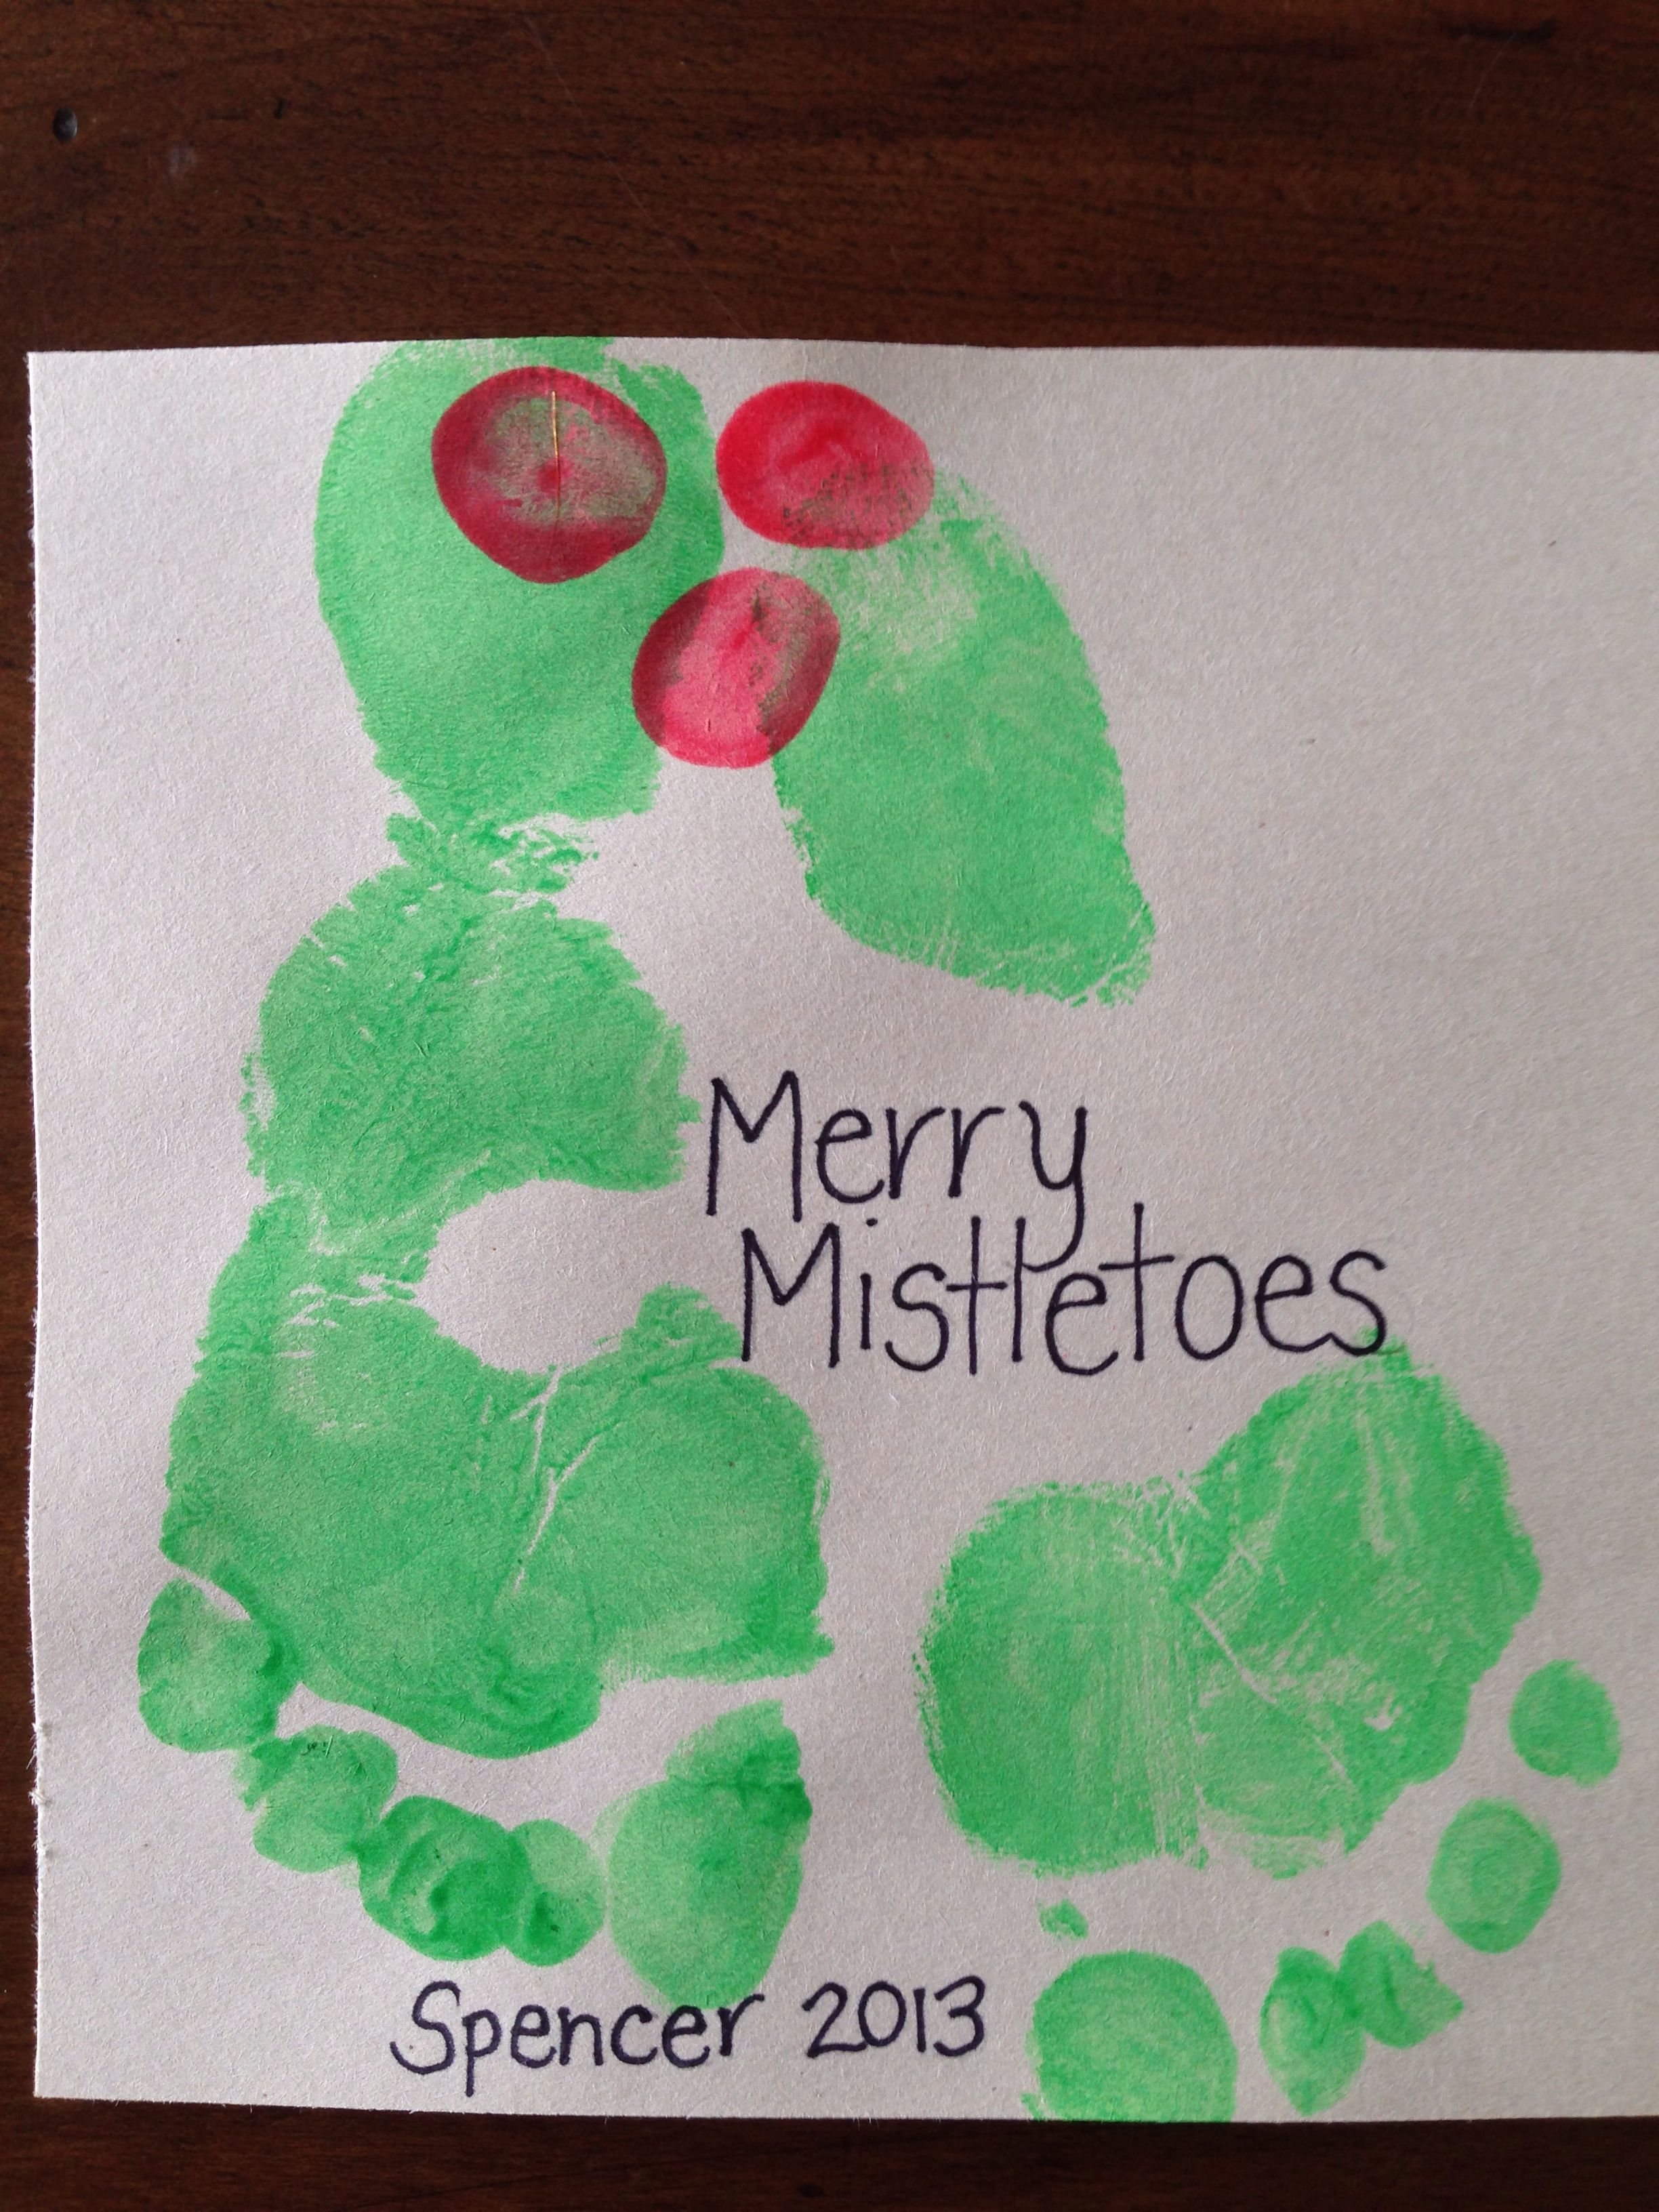 Footprint Christmas craft - Merry Mistletoes #mistletoesfootprintcraft Footprint Christmas craft - Merry Mistletoes #mistletoesfootprintcraft